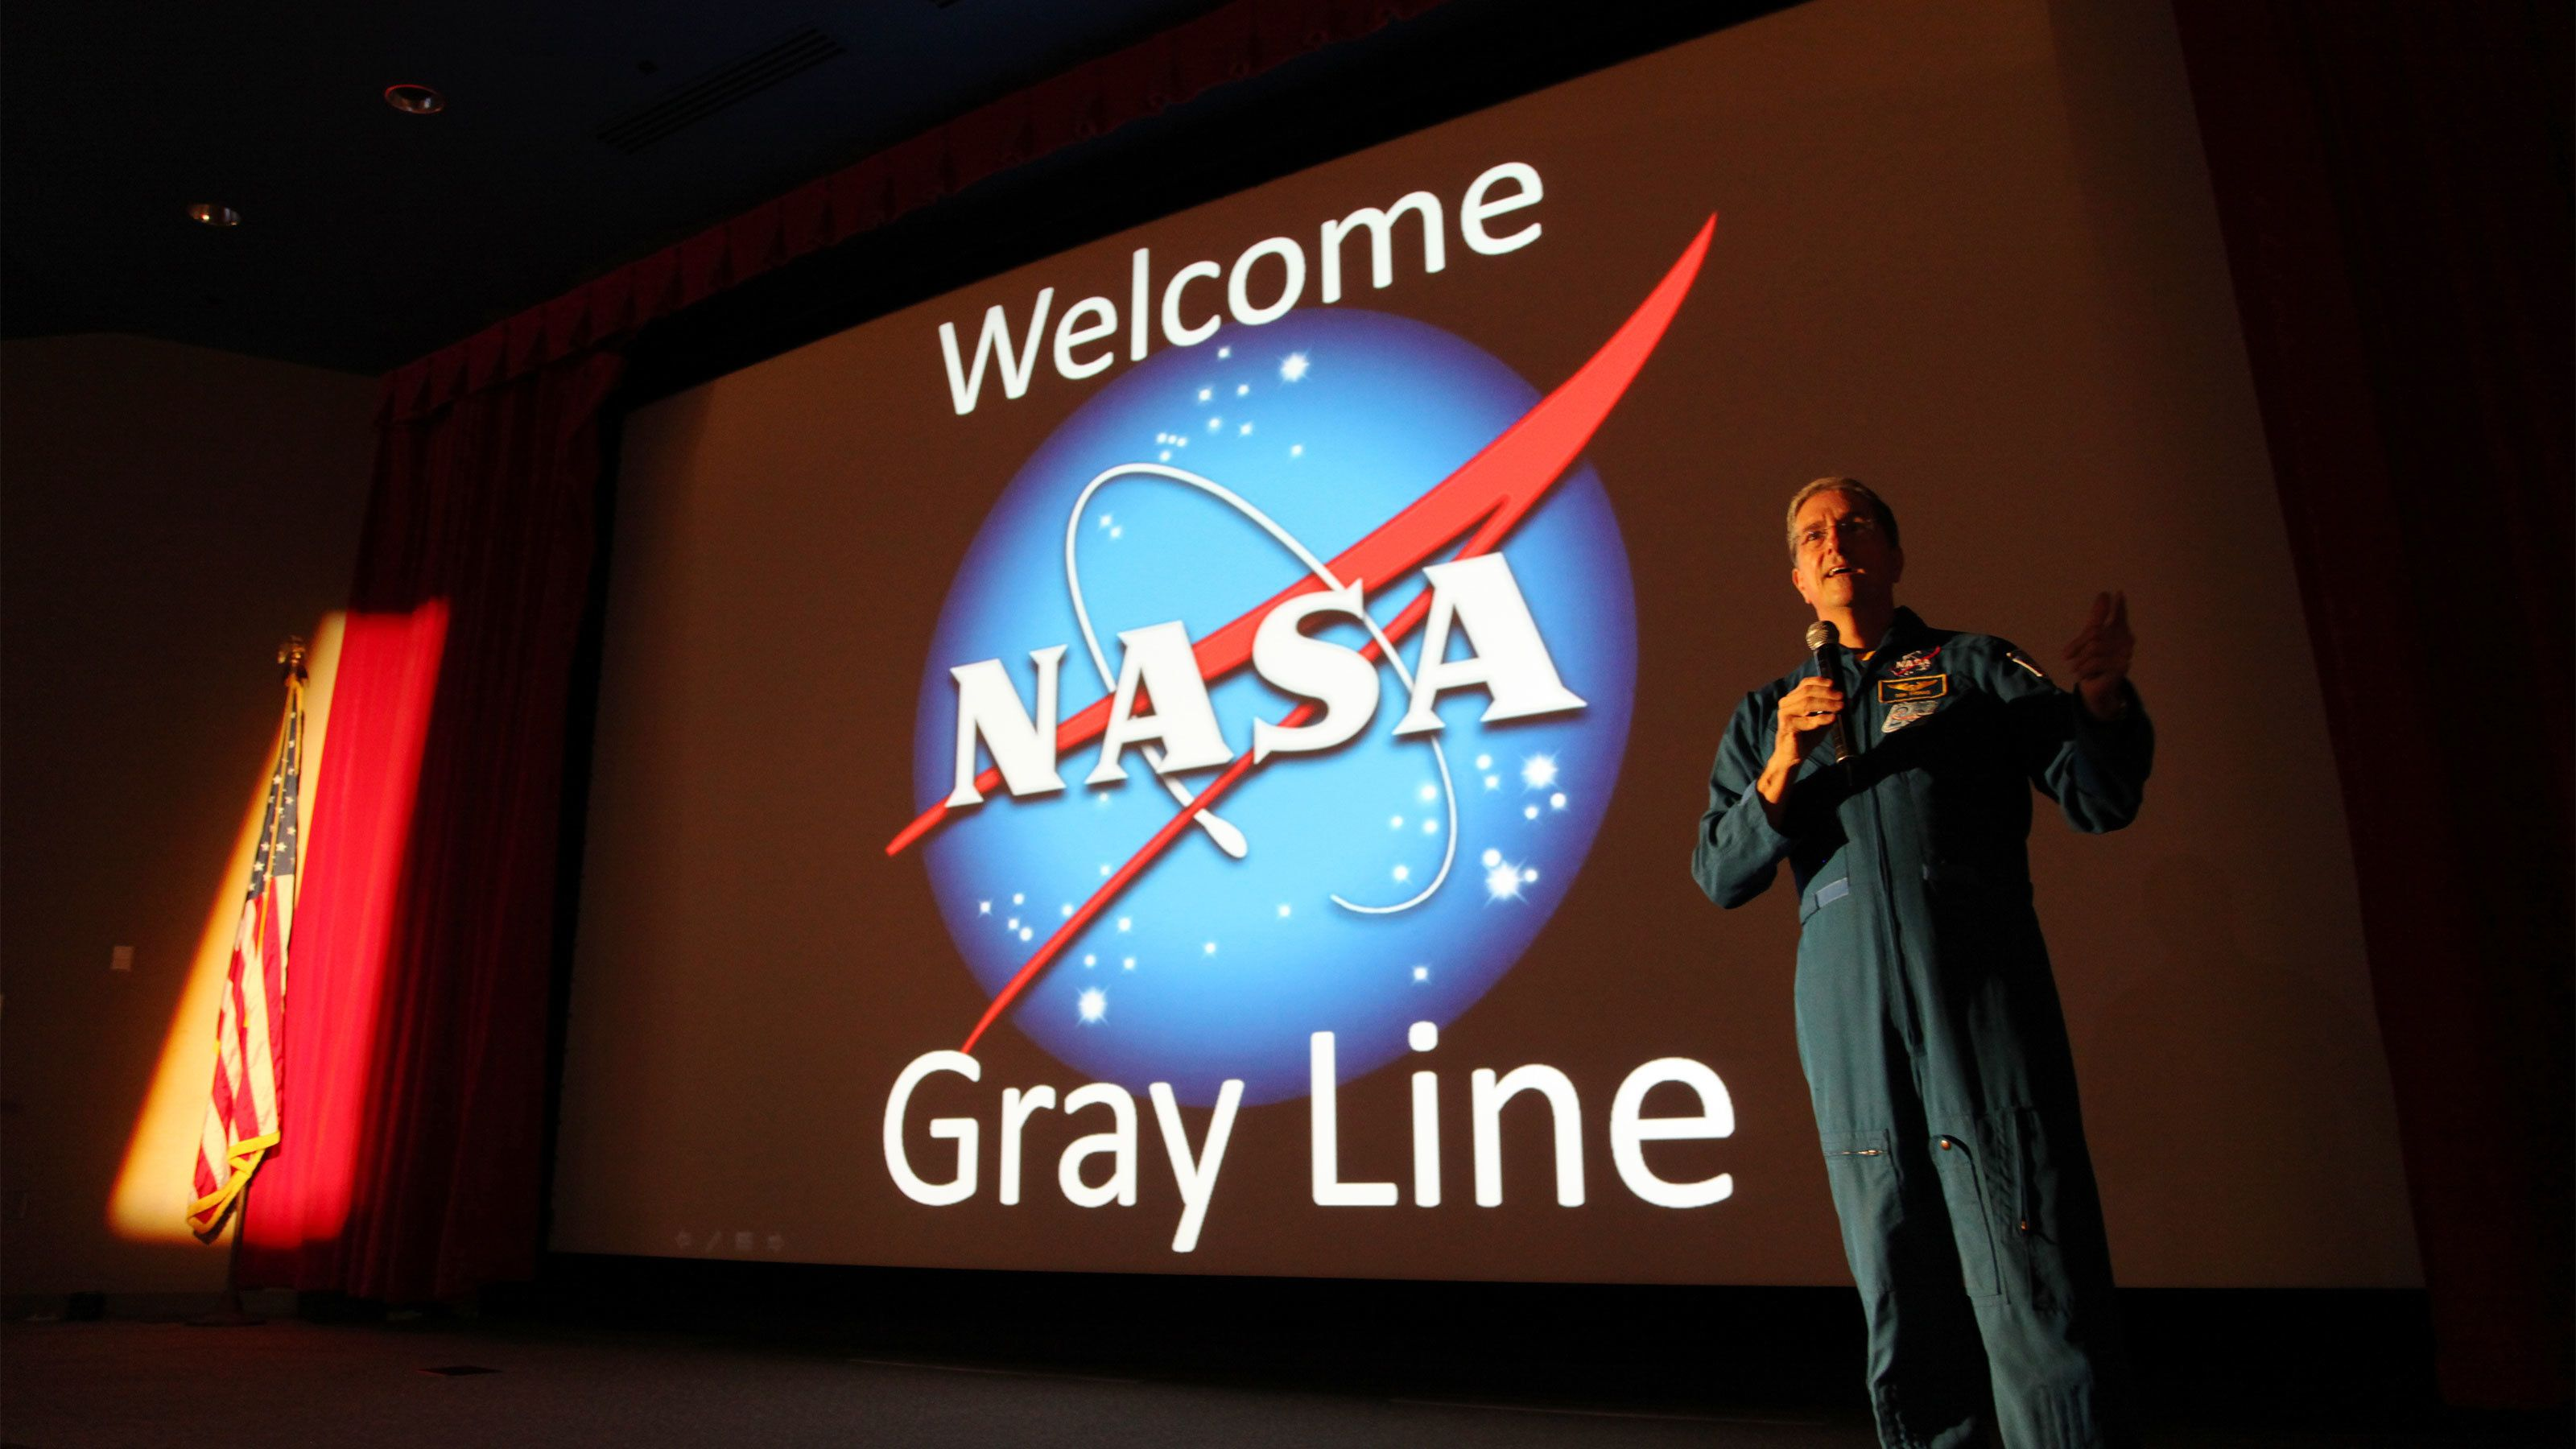 Kennedy Space Center staff member welcoming Gray Line tour in Orlando